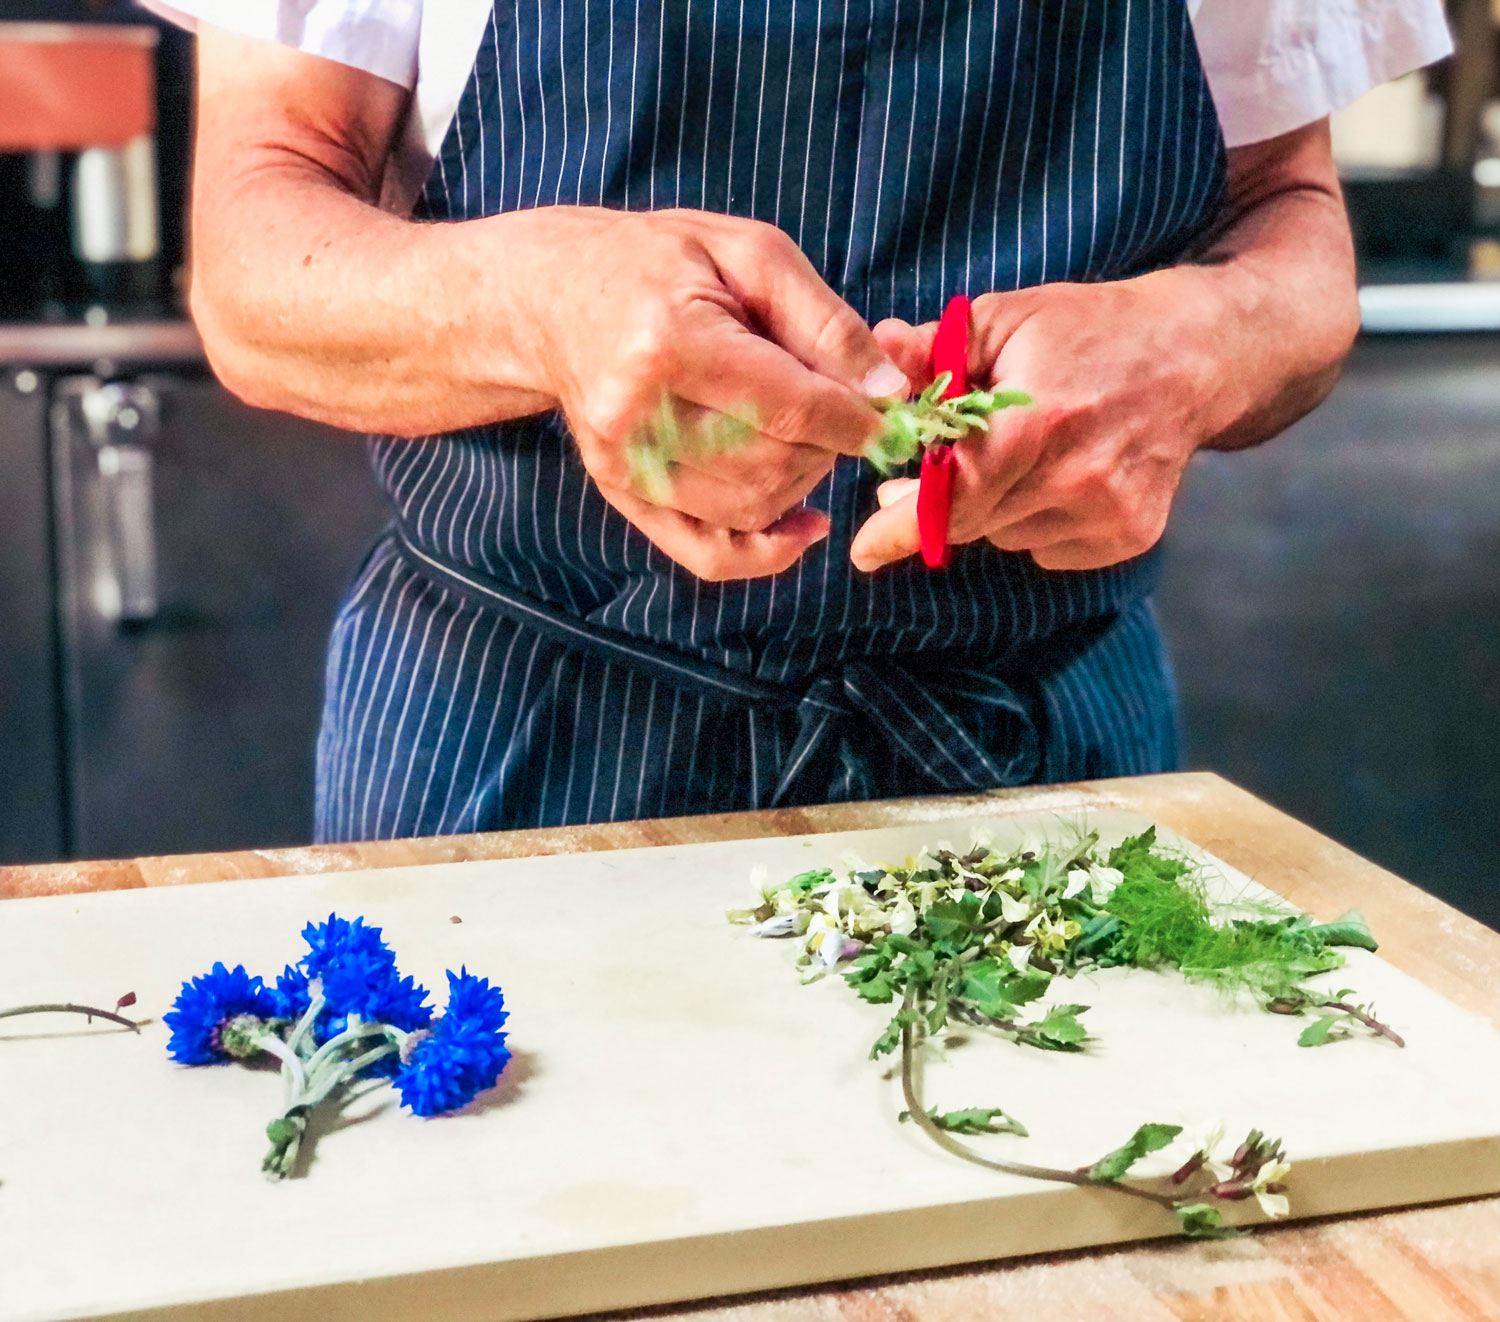 A chef gently trimming the flowers off of cilantro.